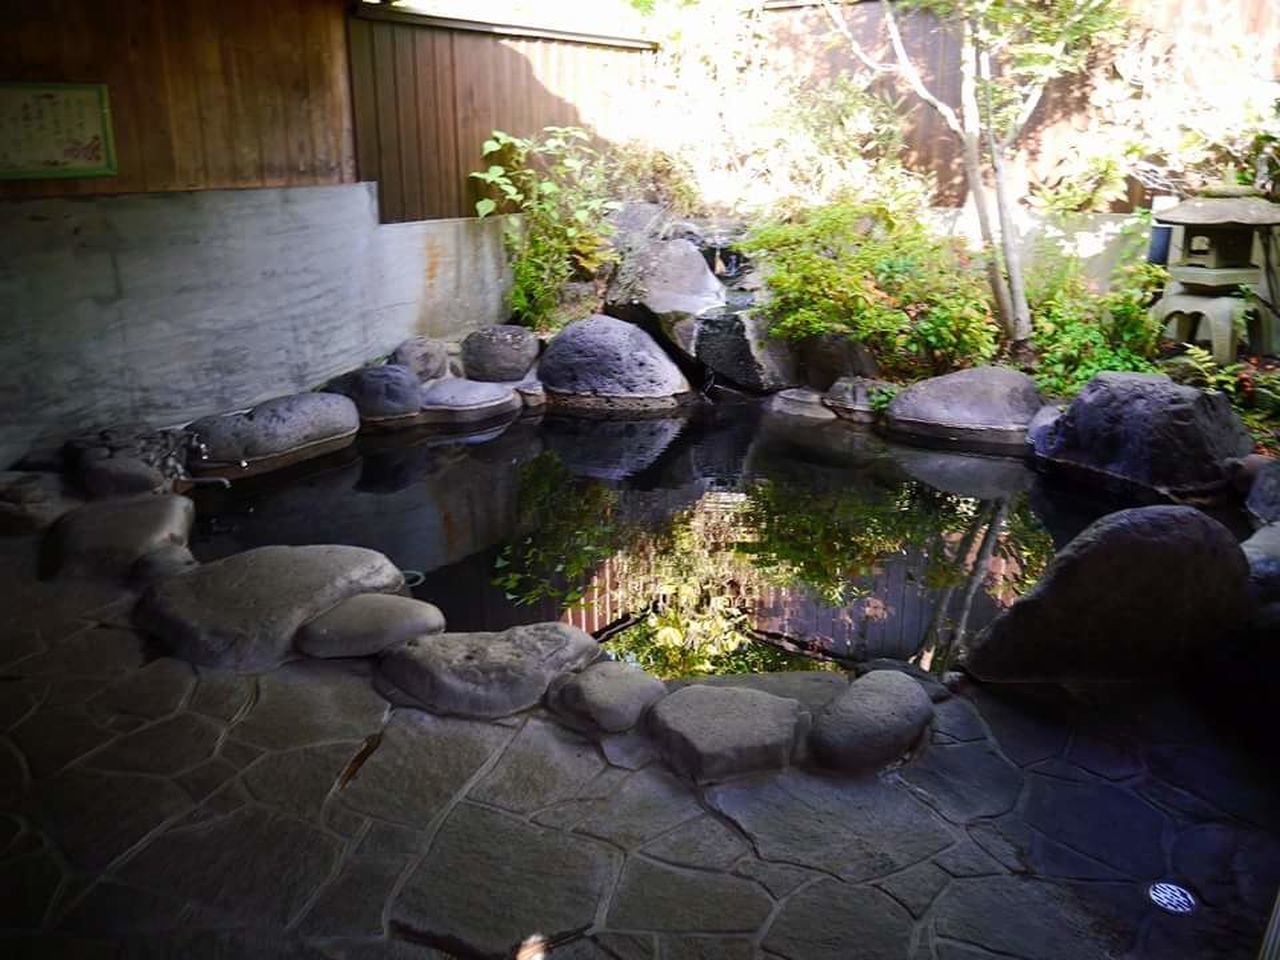 Rock - Object Water Nature No People Outdoors Day Onsen Japan Yufuin KYUSHU Relaxation Healing Place